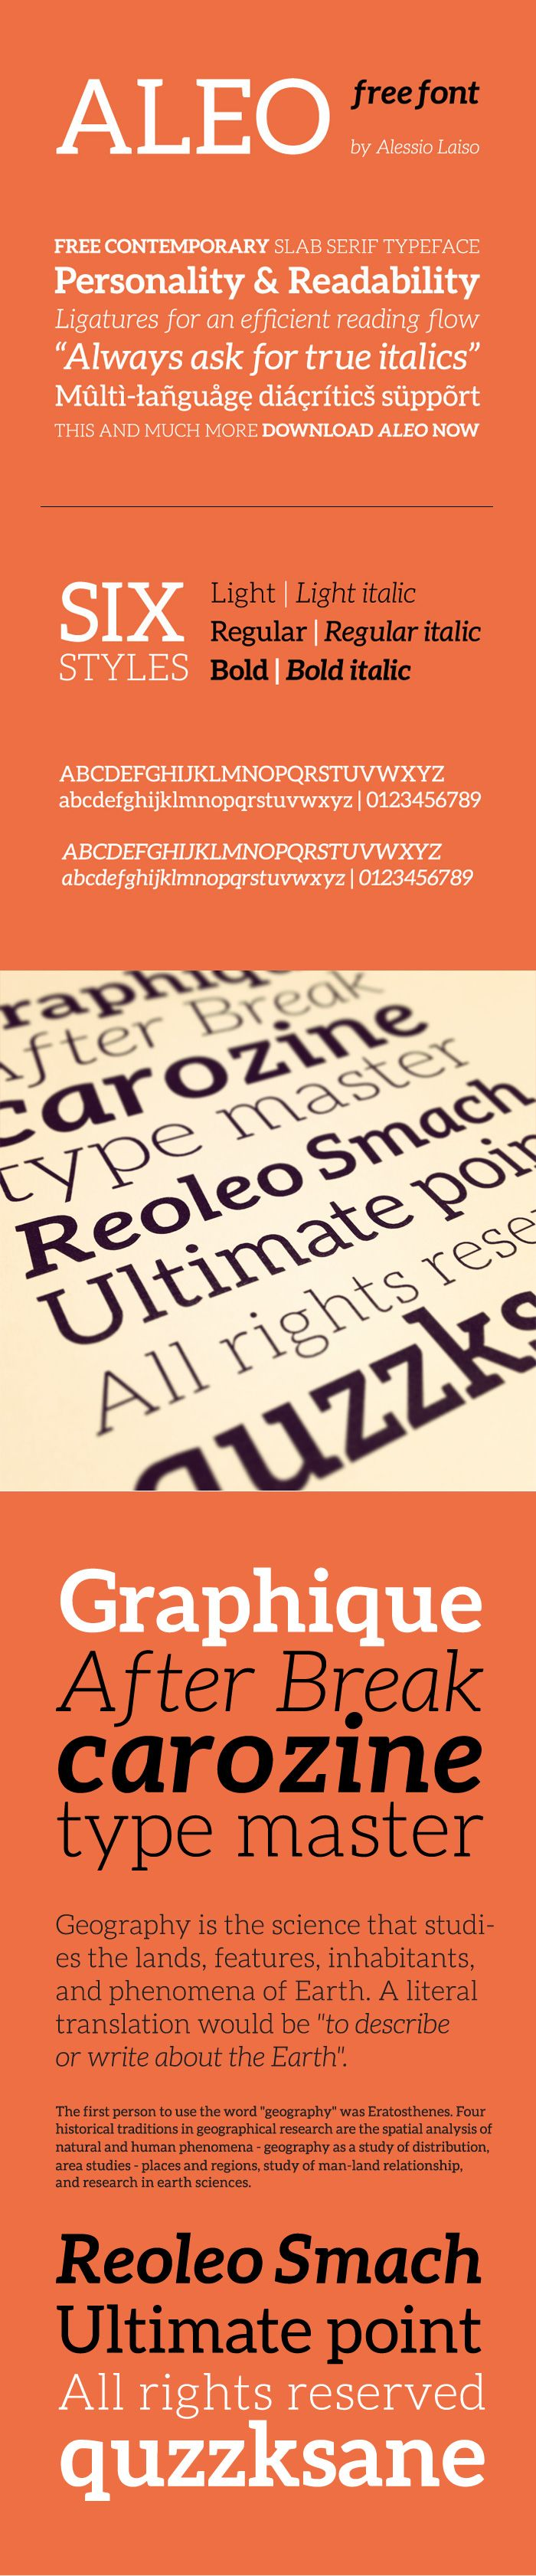 Aleo Free Font The Aleo font family is released under the SIL Open Font License, so it is free for both personal and commercial use.